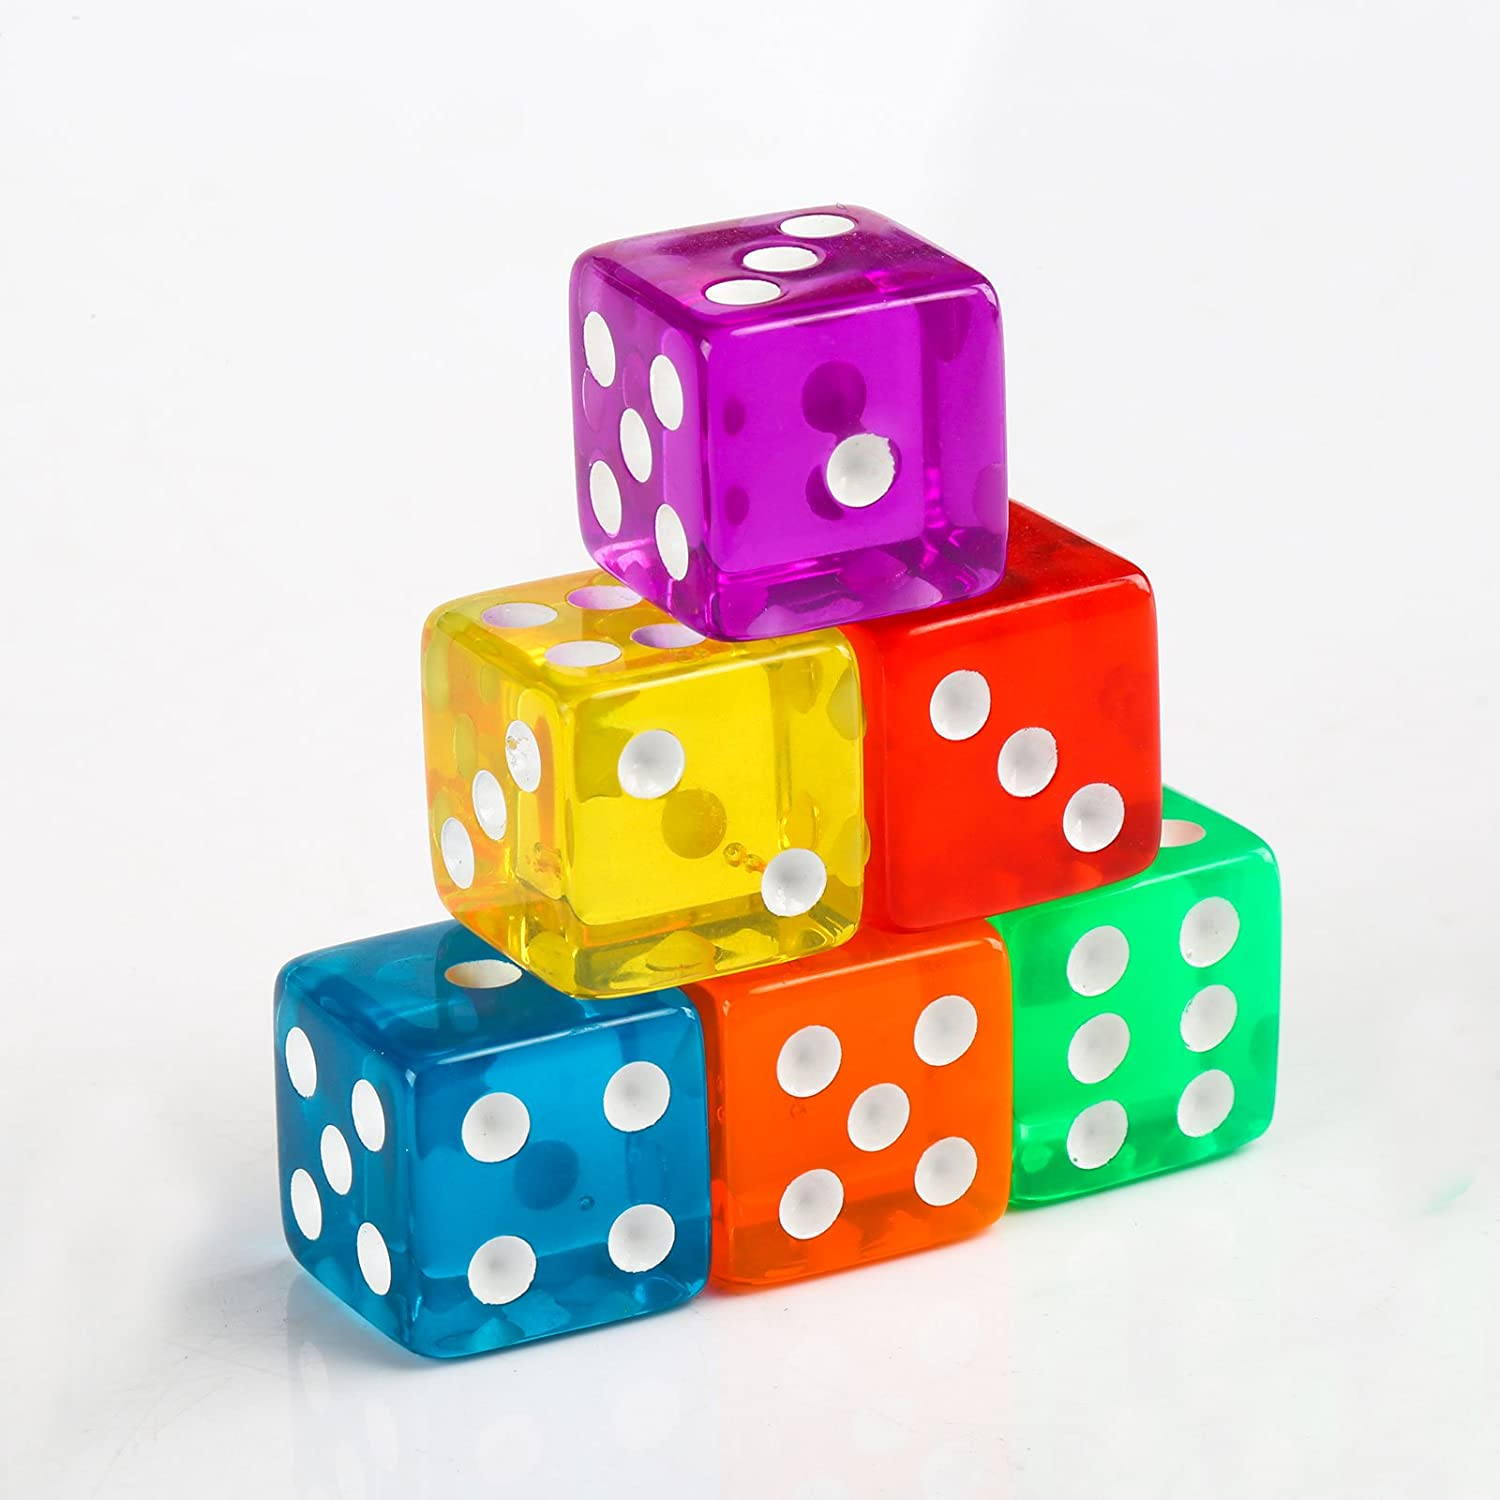 Games GWHOLE 6-Sided Dice Set for Math Learning 8 Colors Casino Party Favor and Gifts